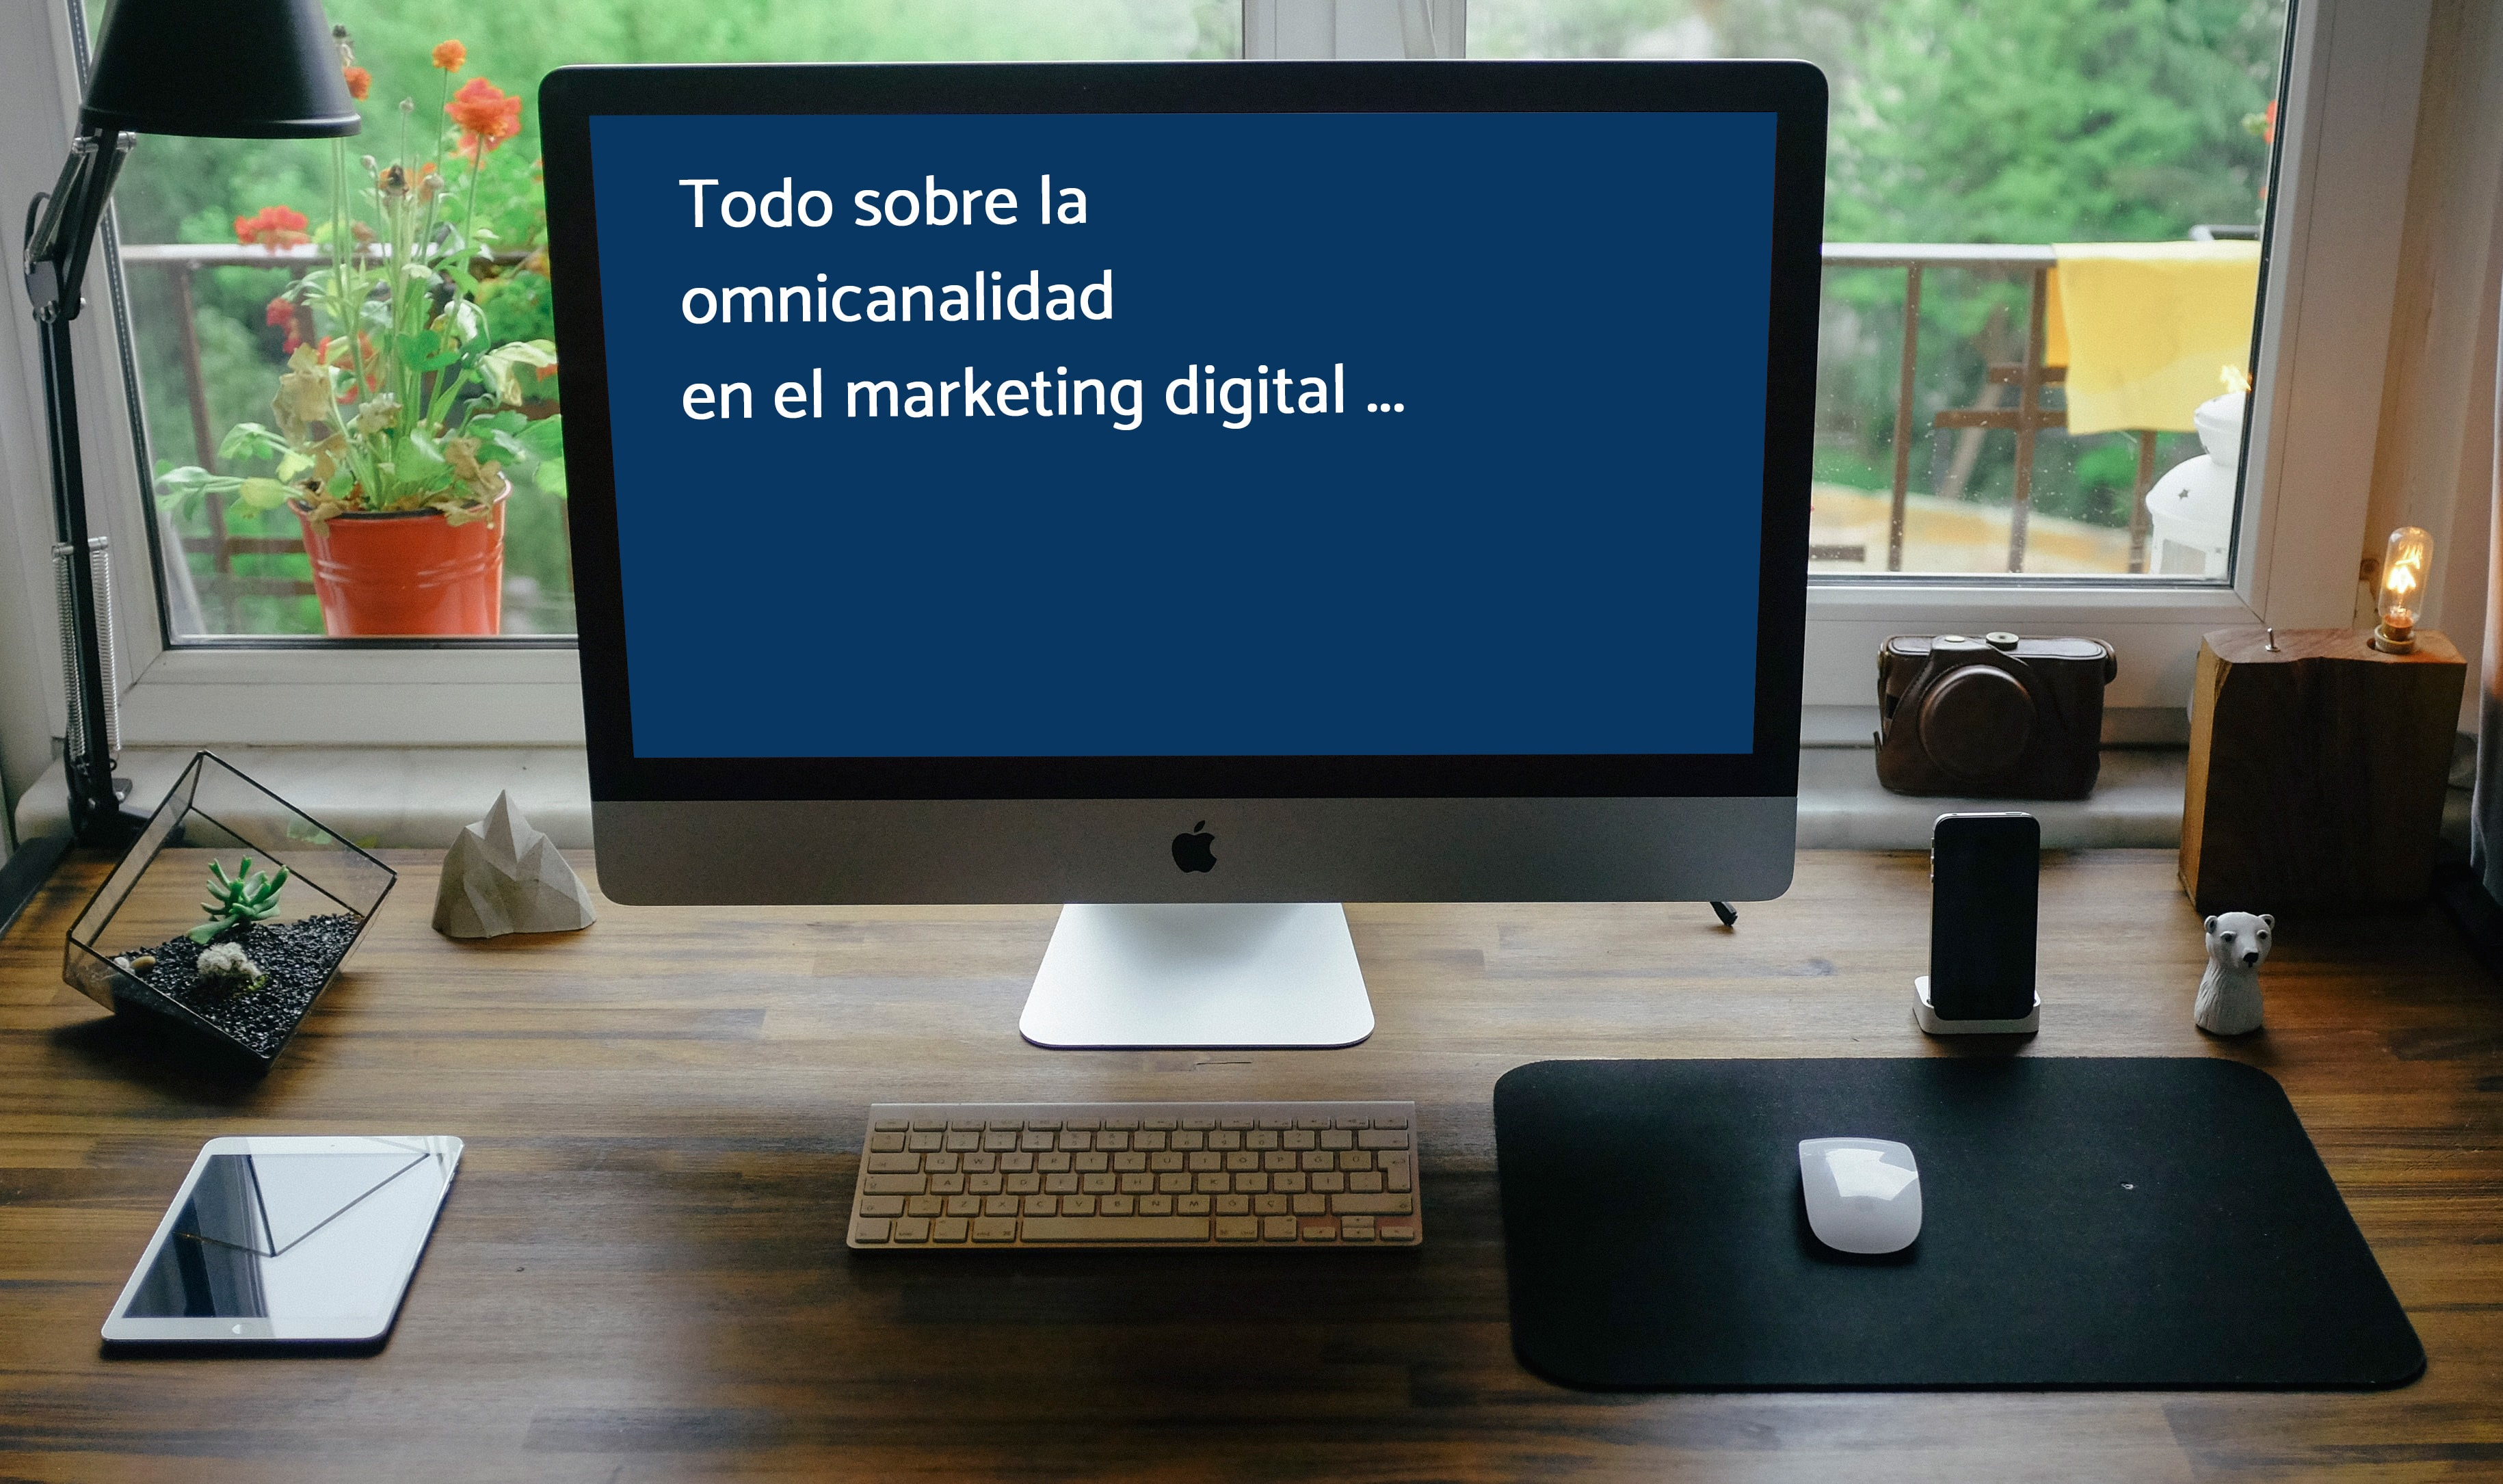 Todo sobre omnicanalidad en el marketing digital